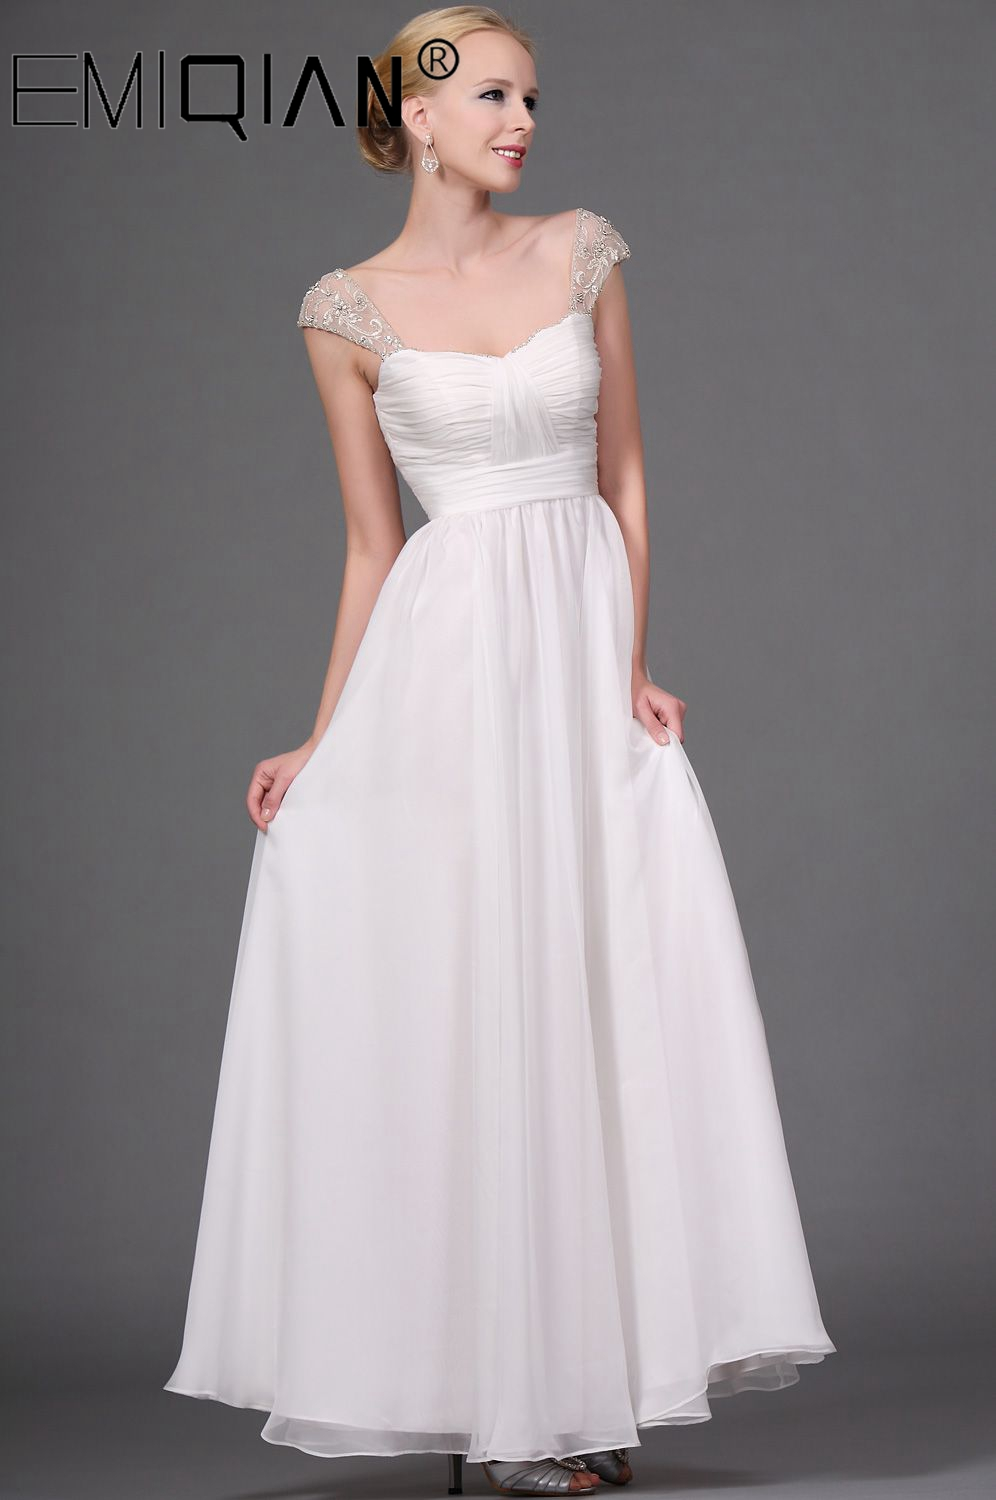 A Line Wedding Dress White/Ivory Chiffon Bridal Gown Woman Vestidos De Novia Plus Size Robe De Mariee